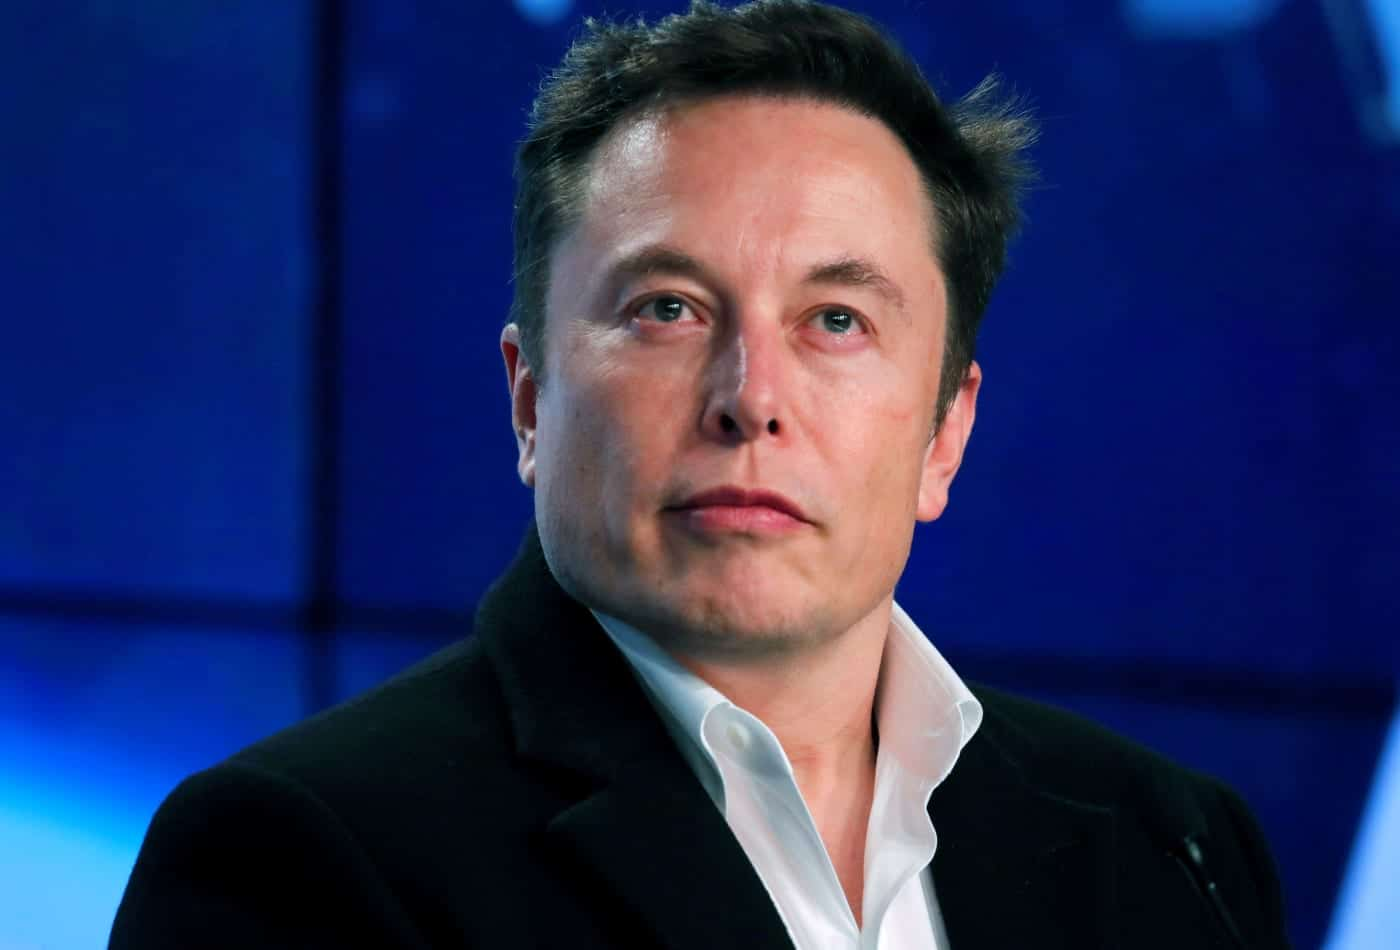 Elon Musk South African, Canadian, and U.S. Technology Entrepreneur, Investor and Engineer